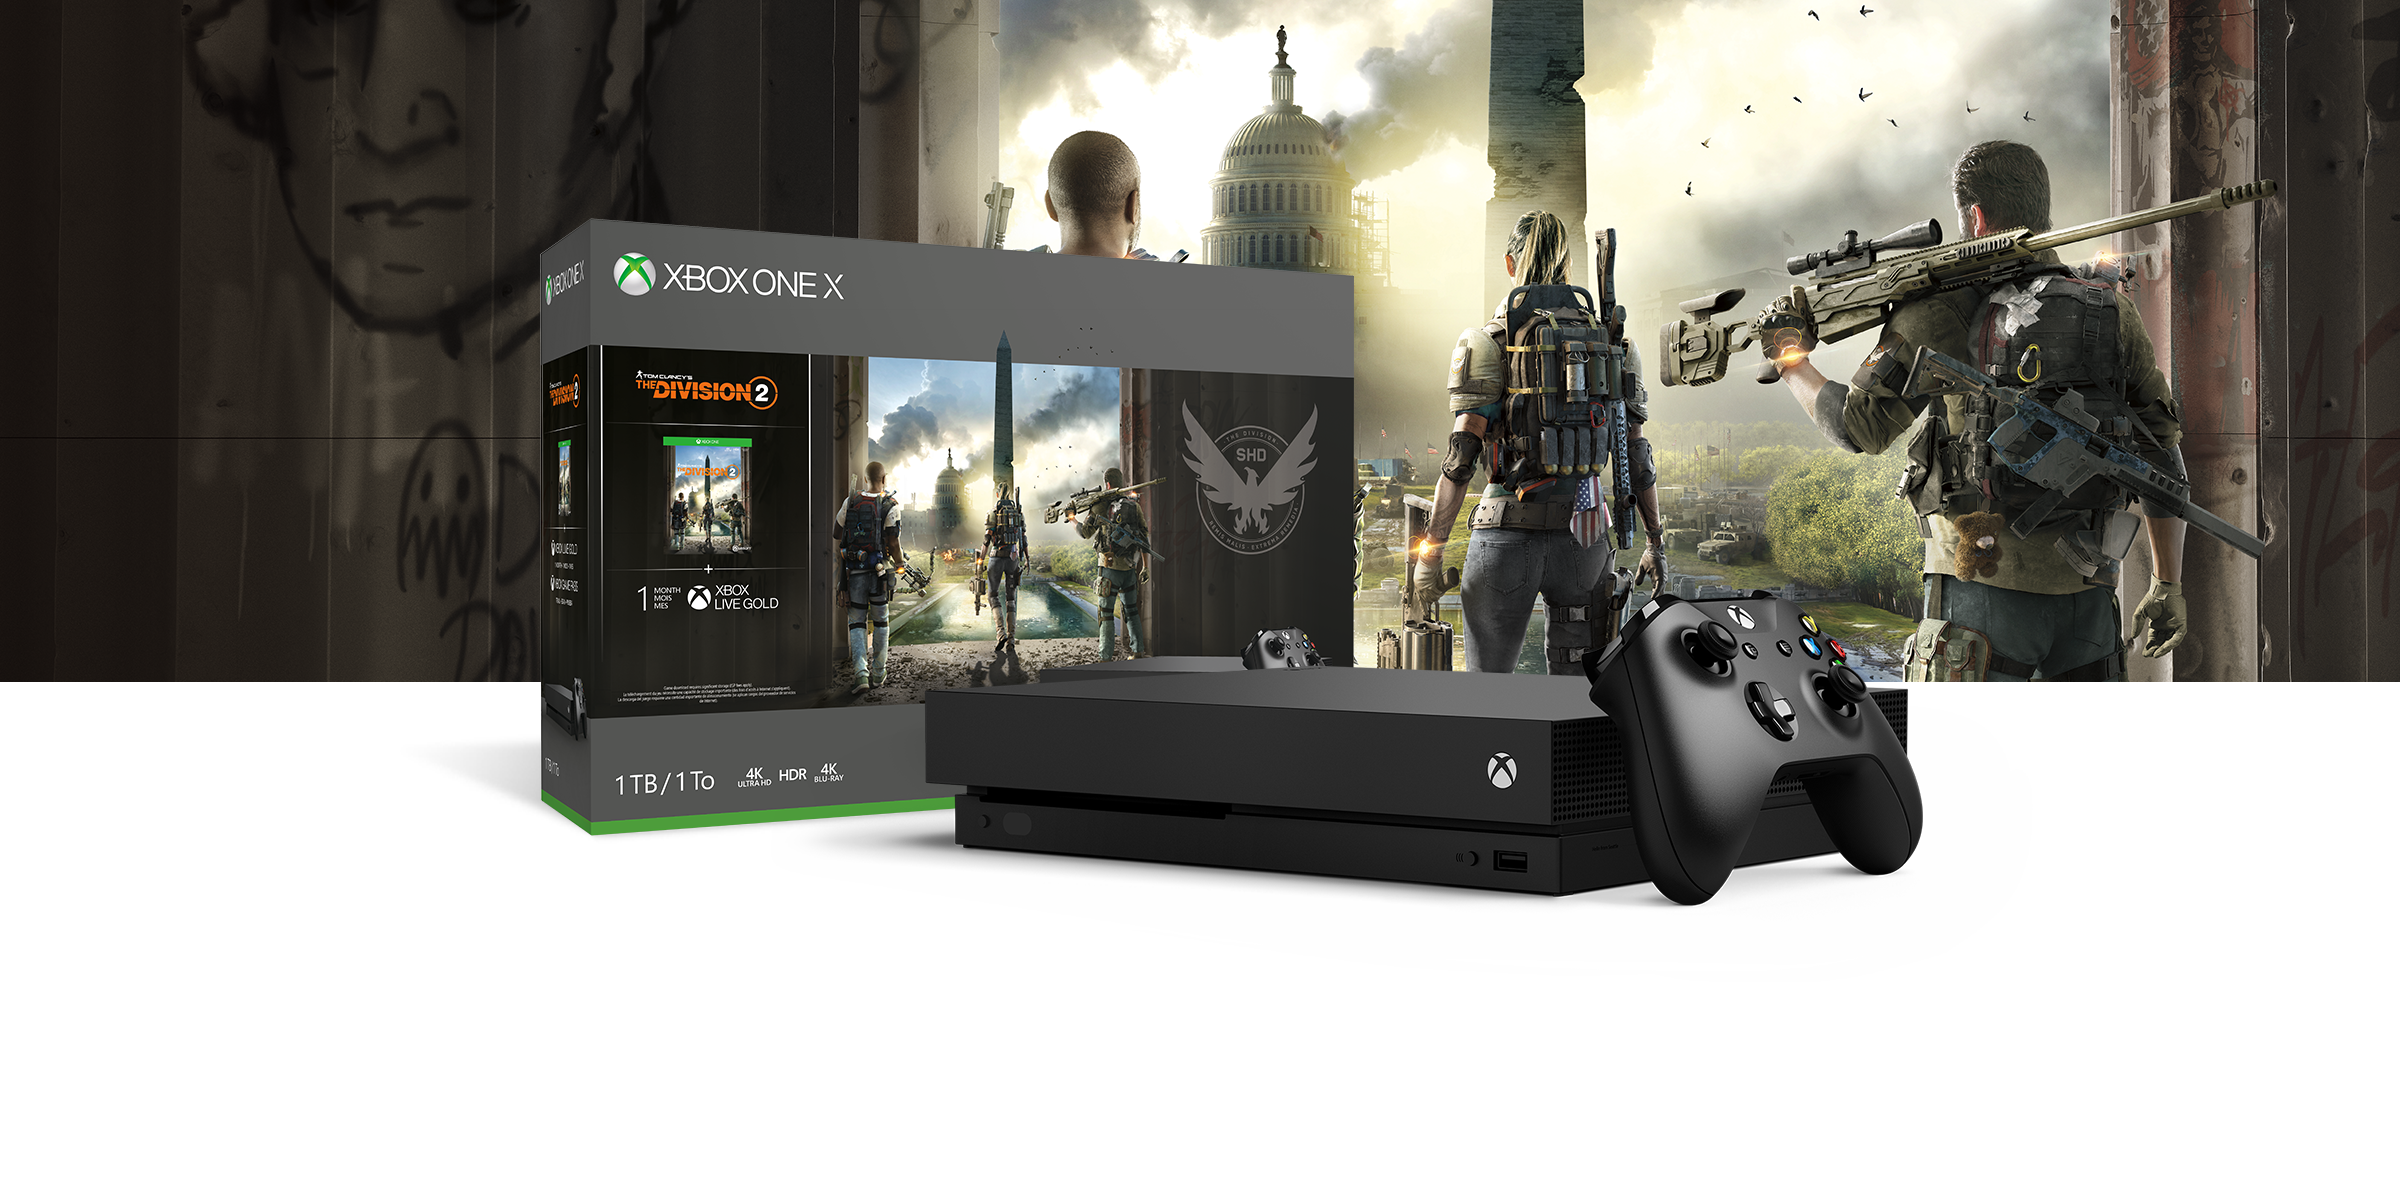 Xbox One X-console voor een doos met hardwarebundel met Tom Clancy's The Division 2-illustraties